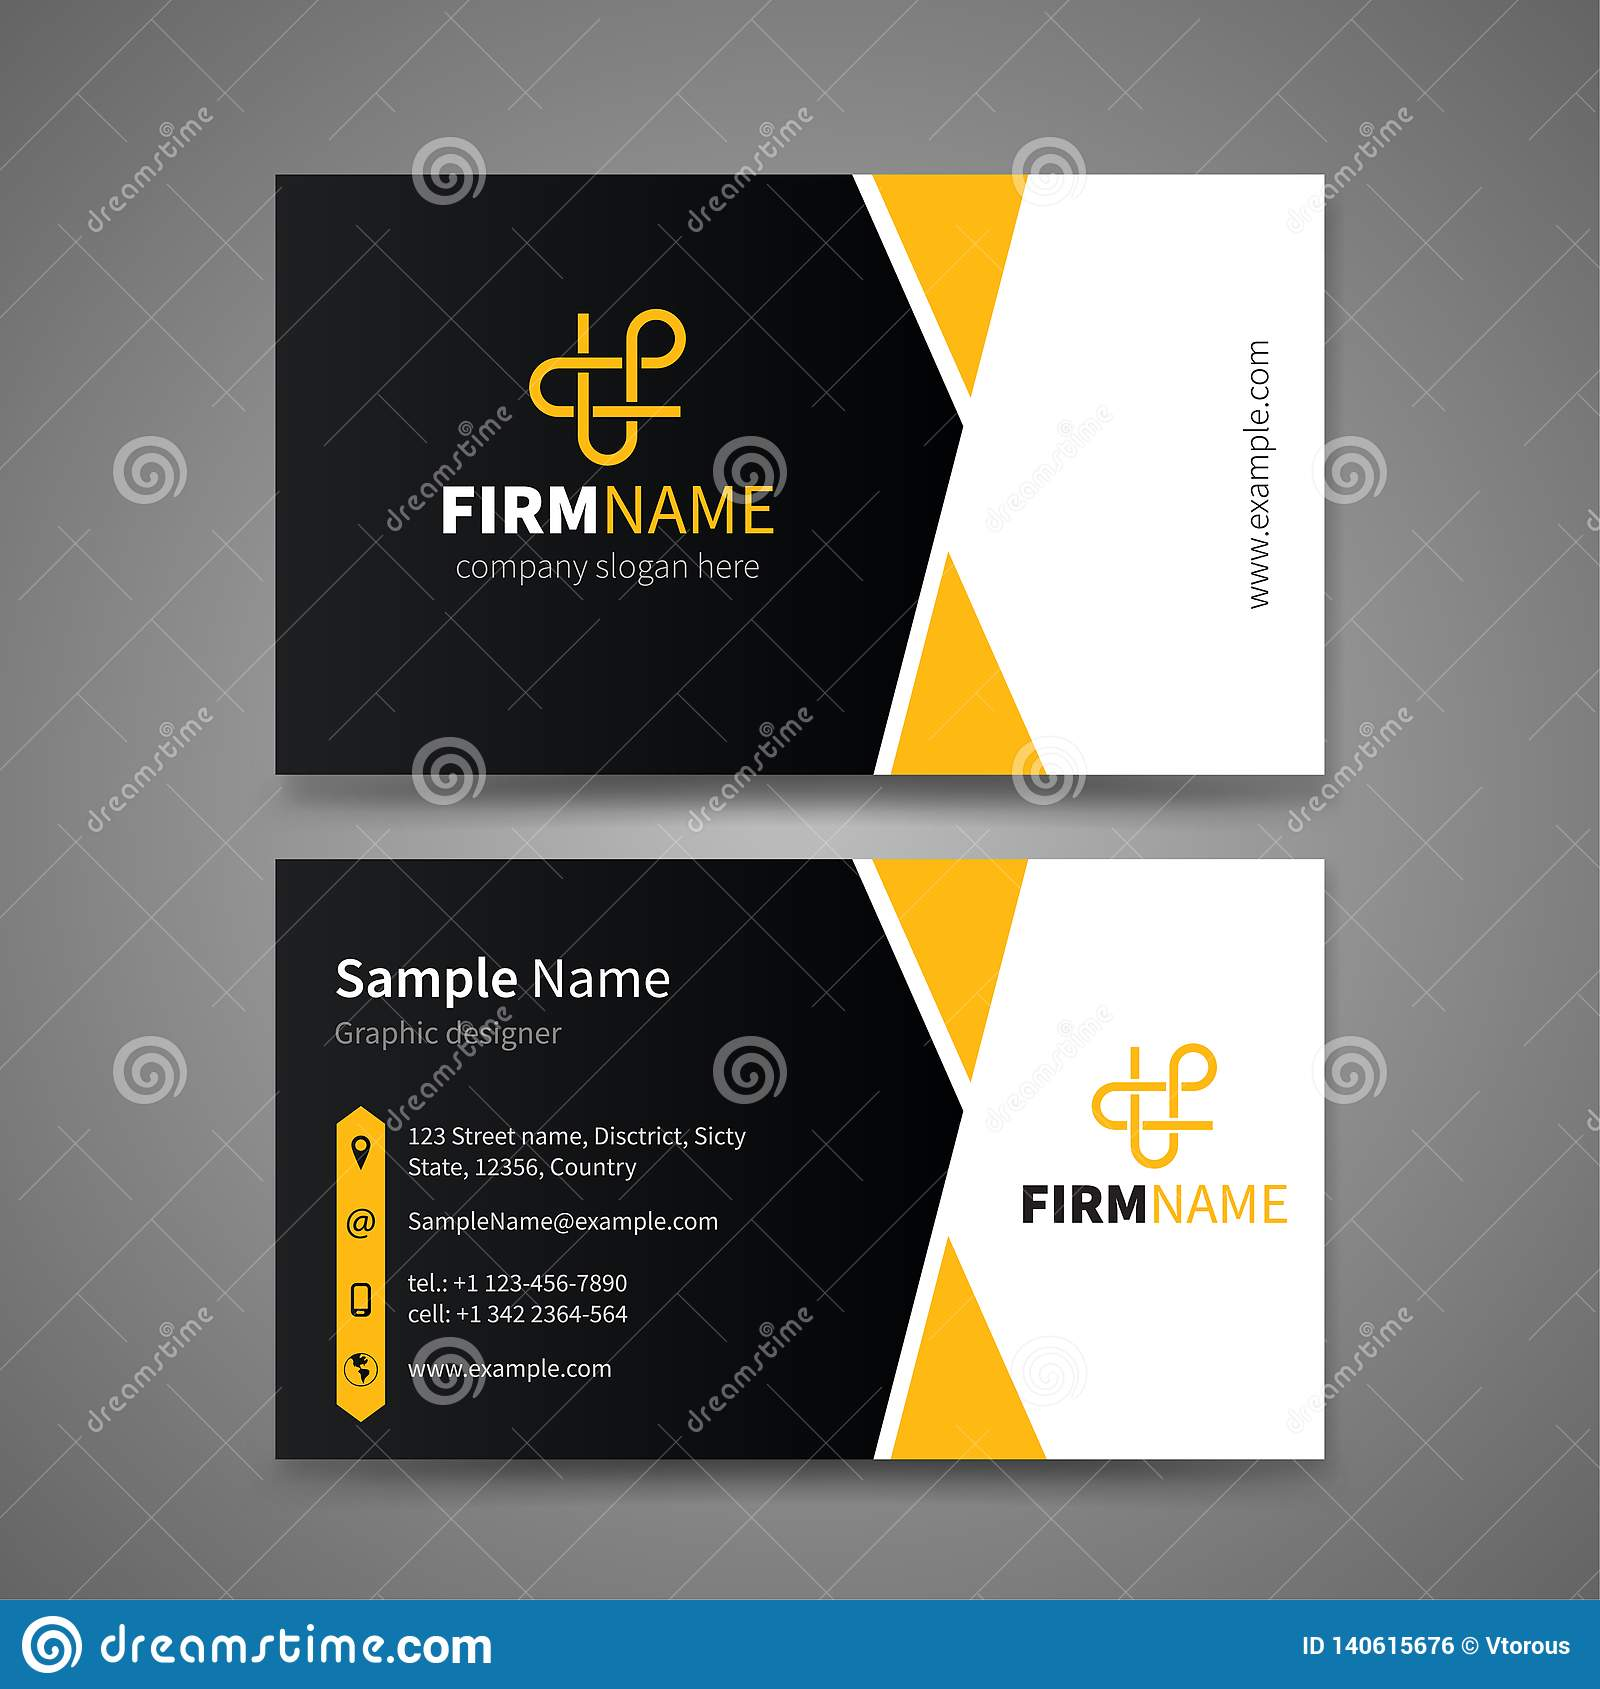 Business card templates stock vector. Illustration of abstract With Regard To Web Design Business Cards Templates